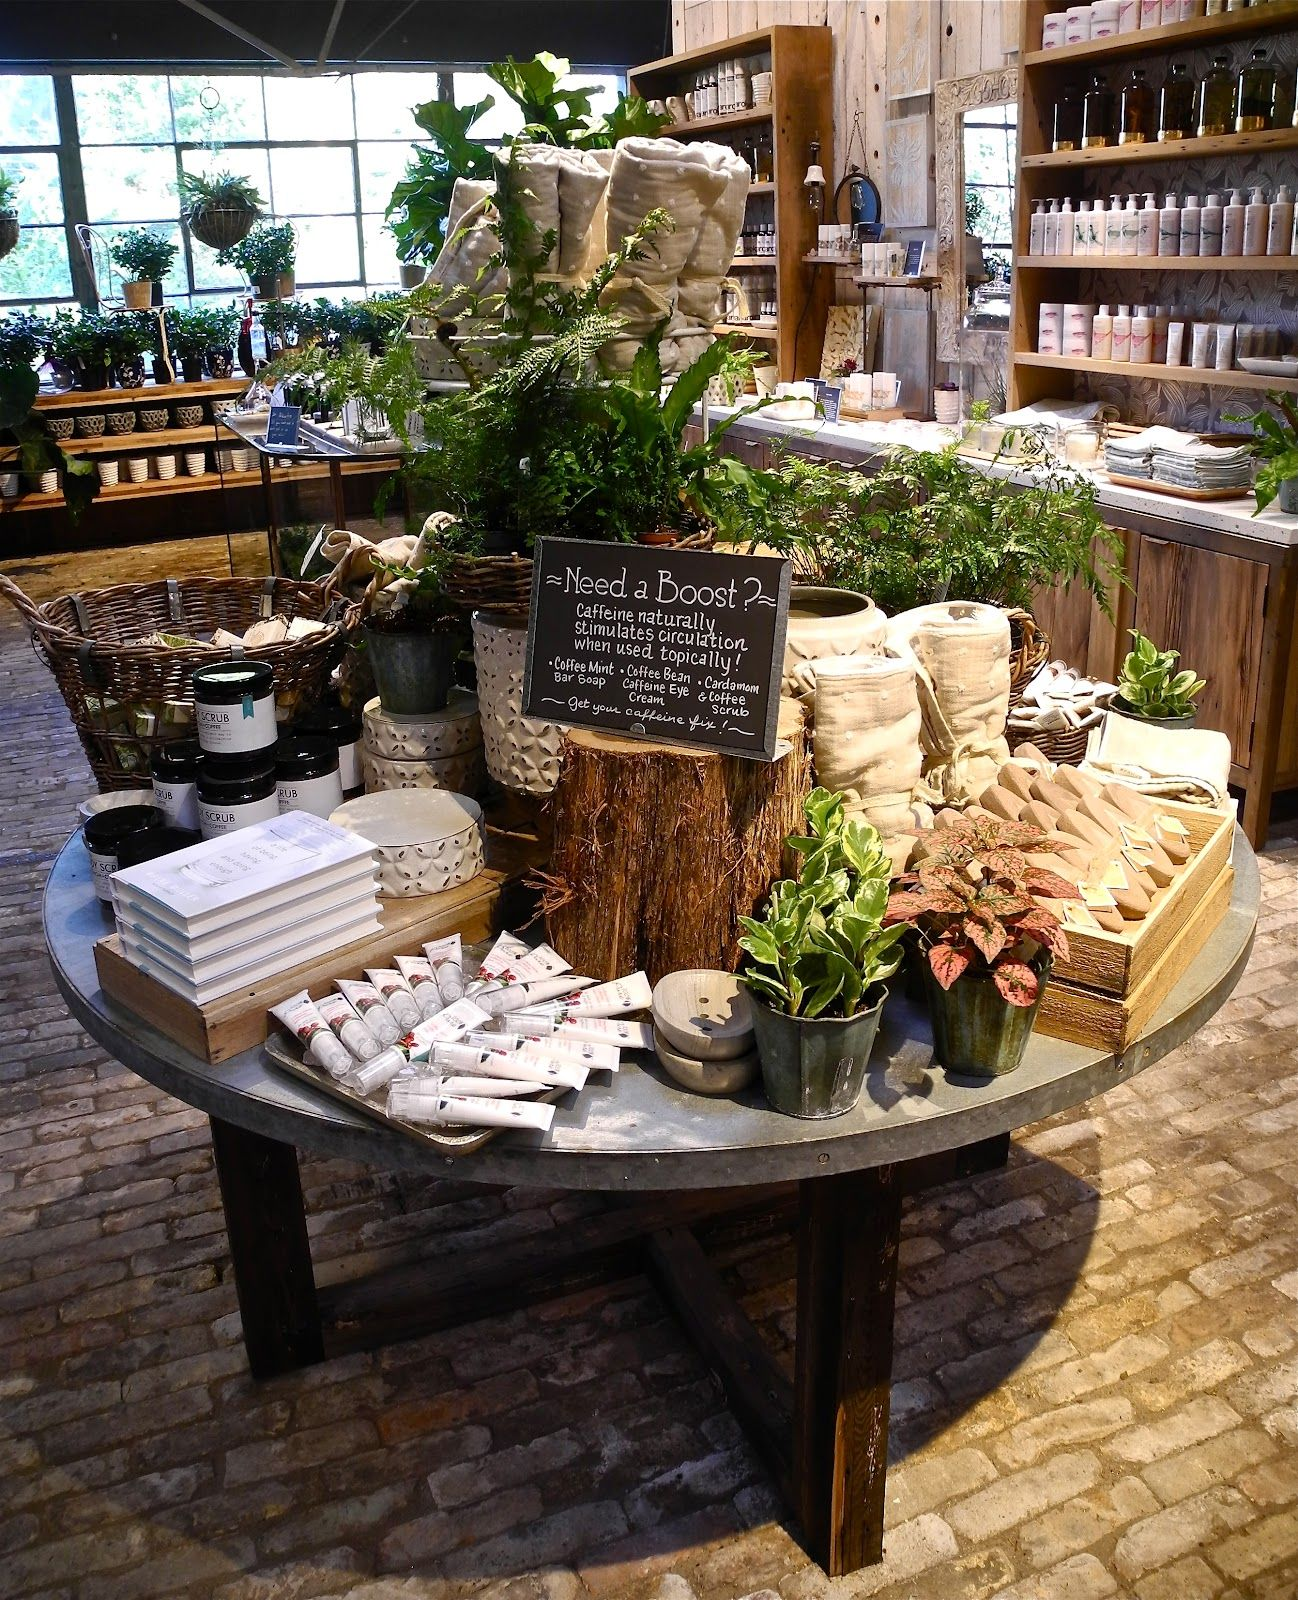 Paradis Express Terrain In Westport Dessert Tables Pinterest Display Shop Ideas And Retail